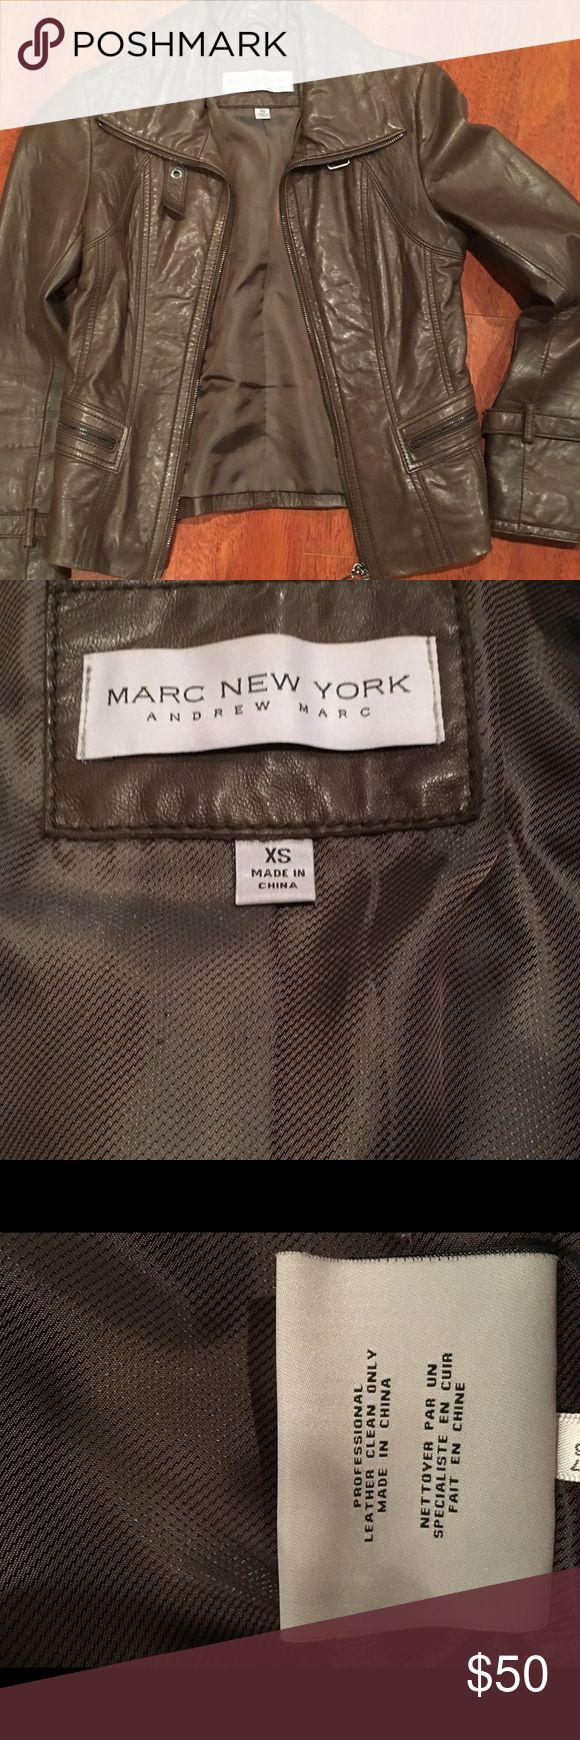 Marc New York Andrew Marc Leather Jacket Barely used and in excellent condition. Size XS. Andrew Marc Jackets & Coats